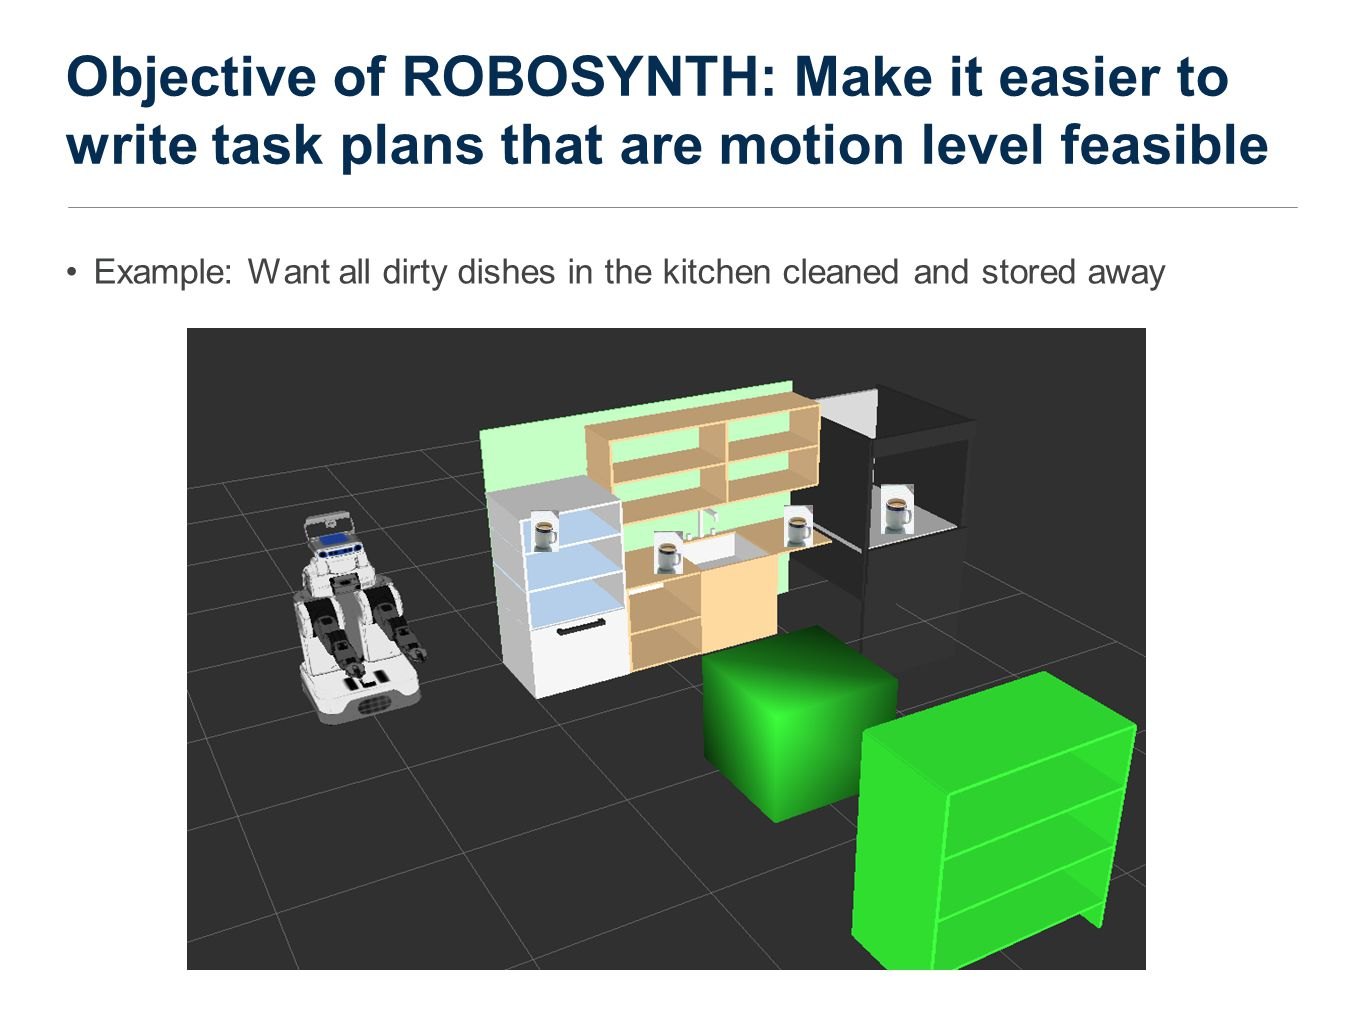 Objective of ROBOSYNTH: Make it easier to write task plans that are motion level feasible Example: Want all dirty dishes in the kitchen cleaned and stored away